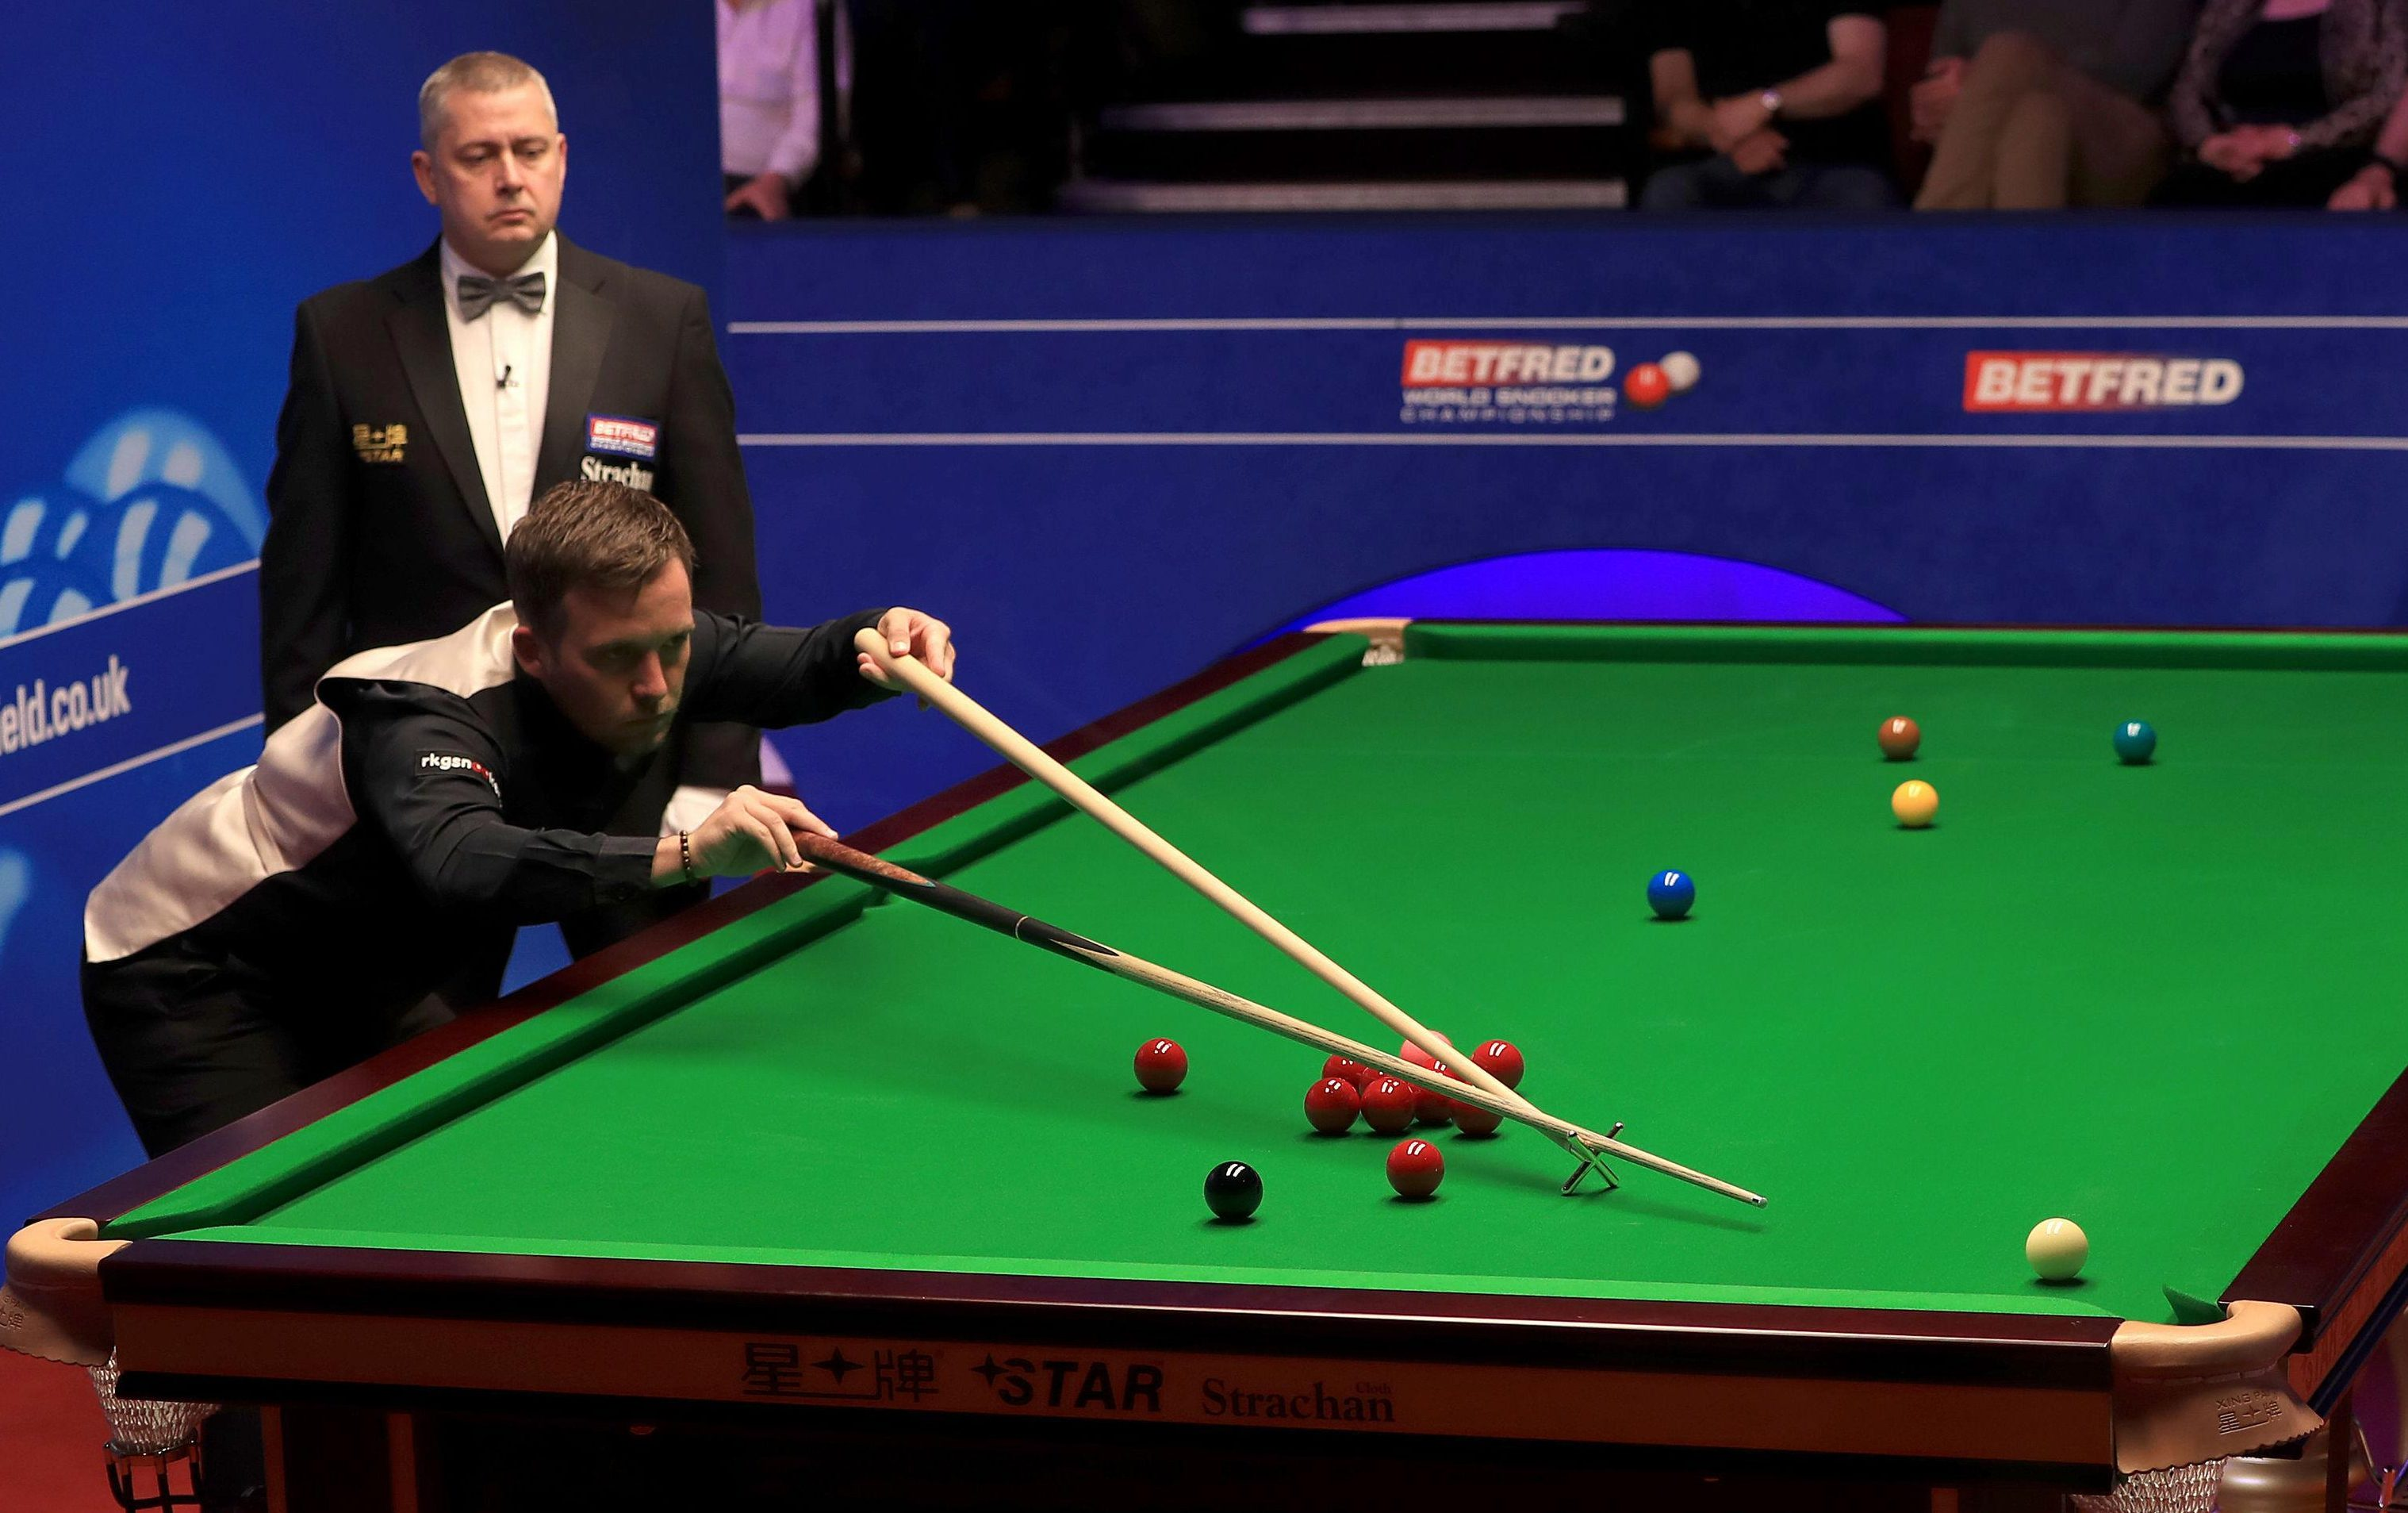 The World Professional Billiards and Snooker Association have temporary banned the Welshman until the outcome of a disciplinary hearing is confimed